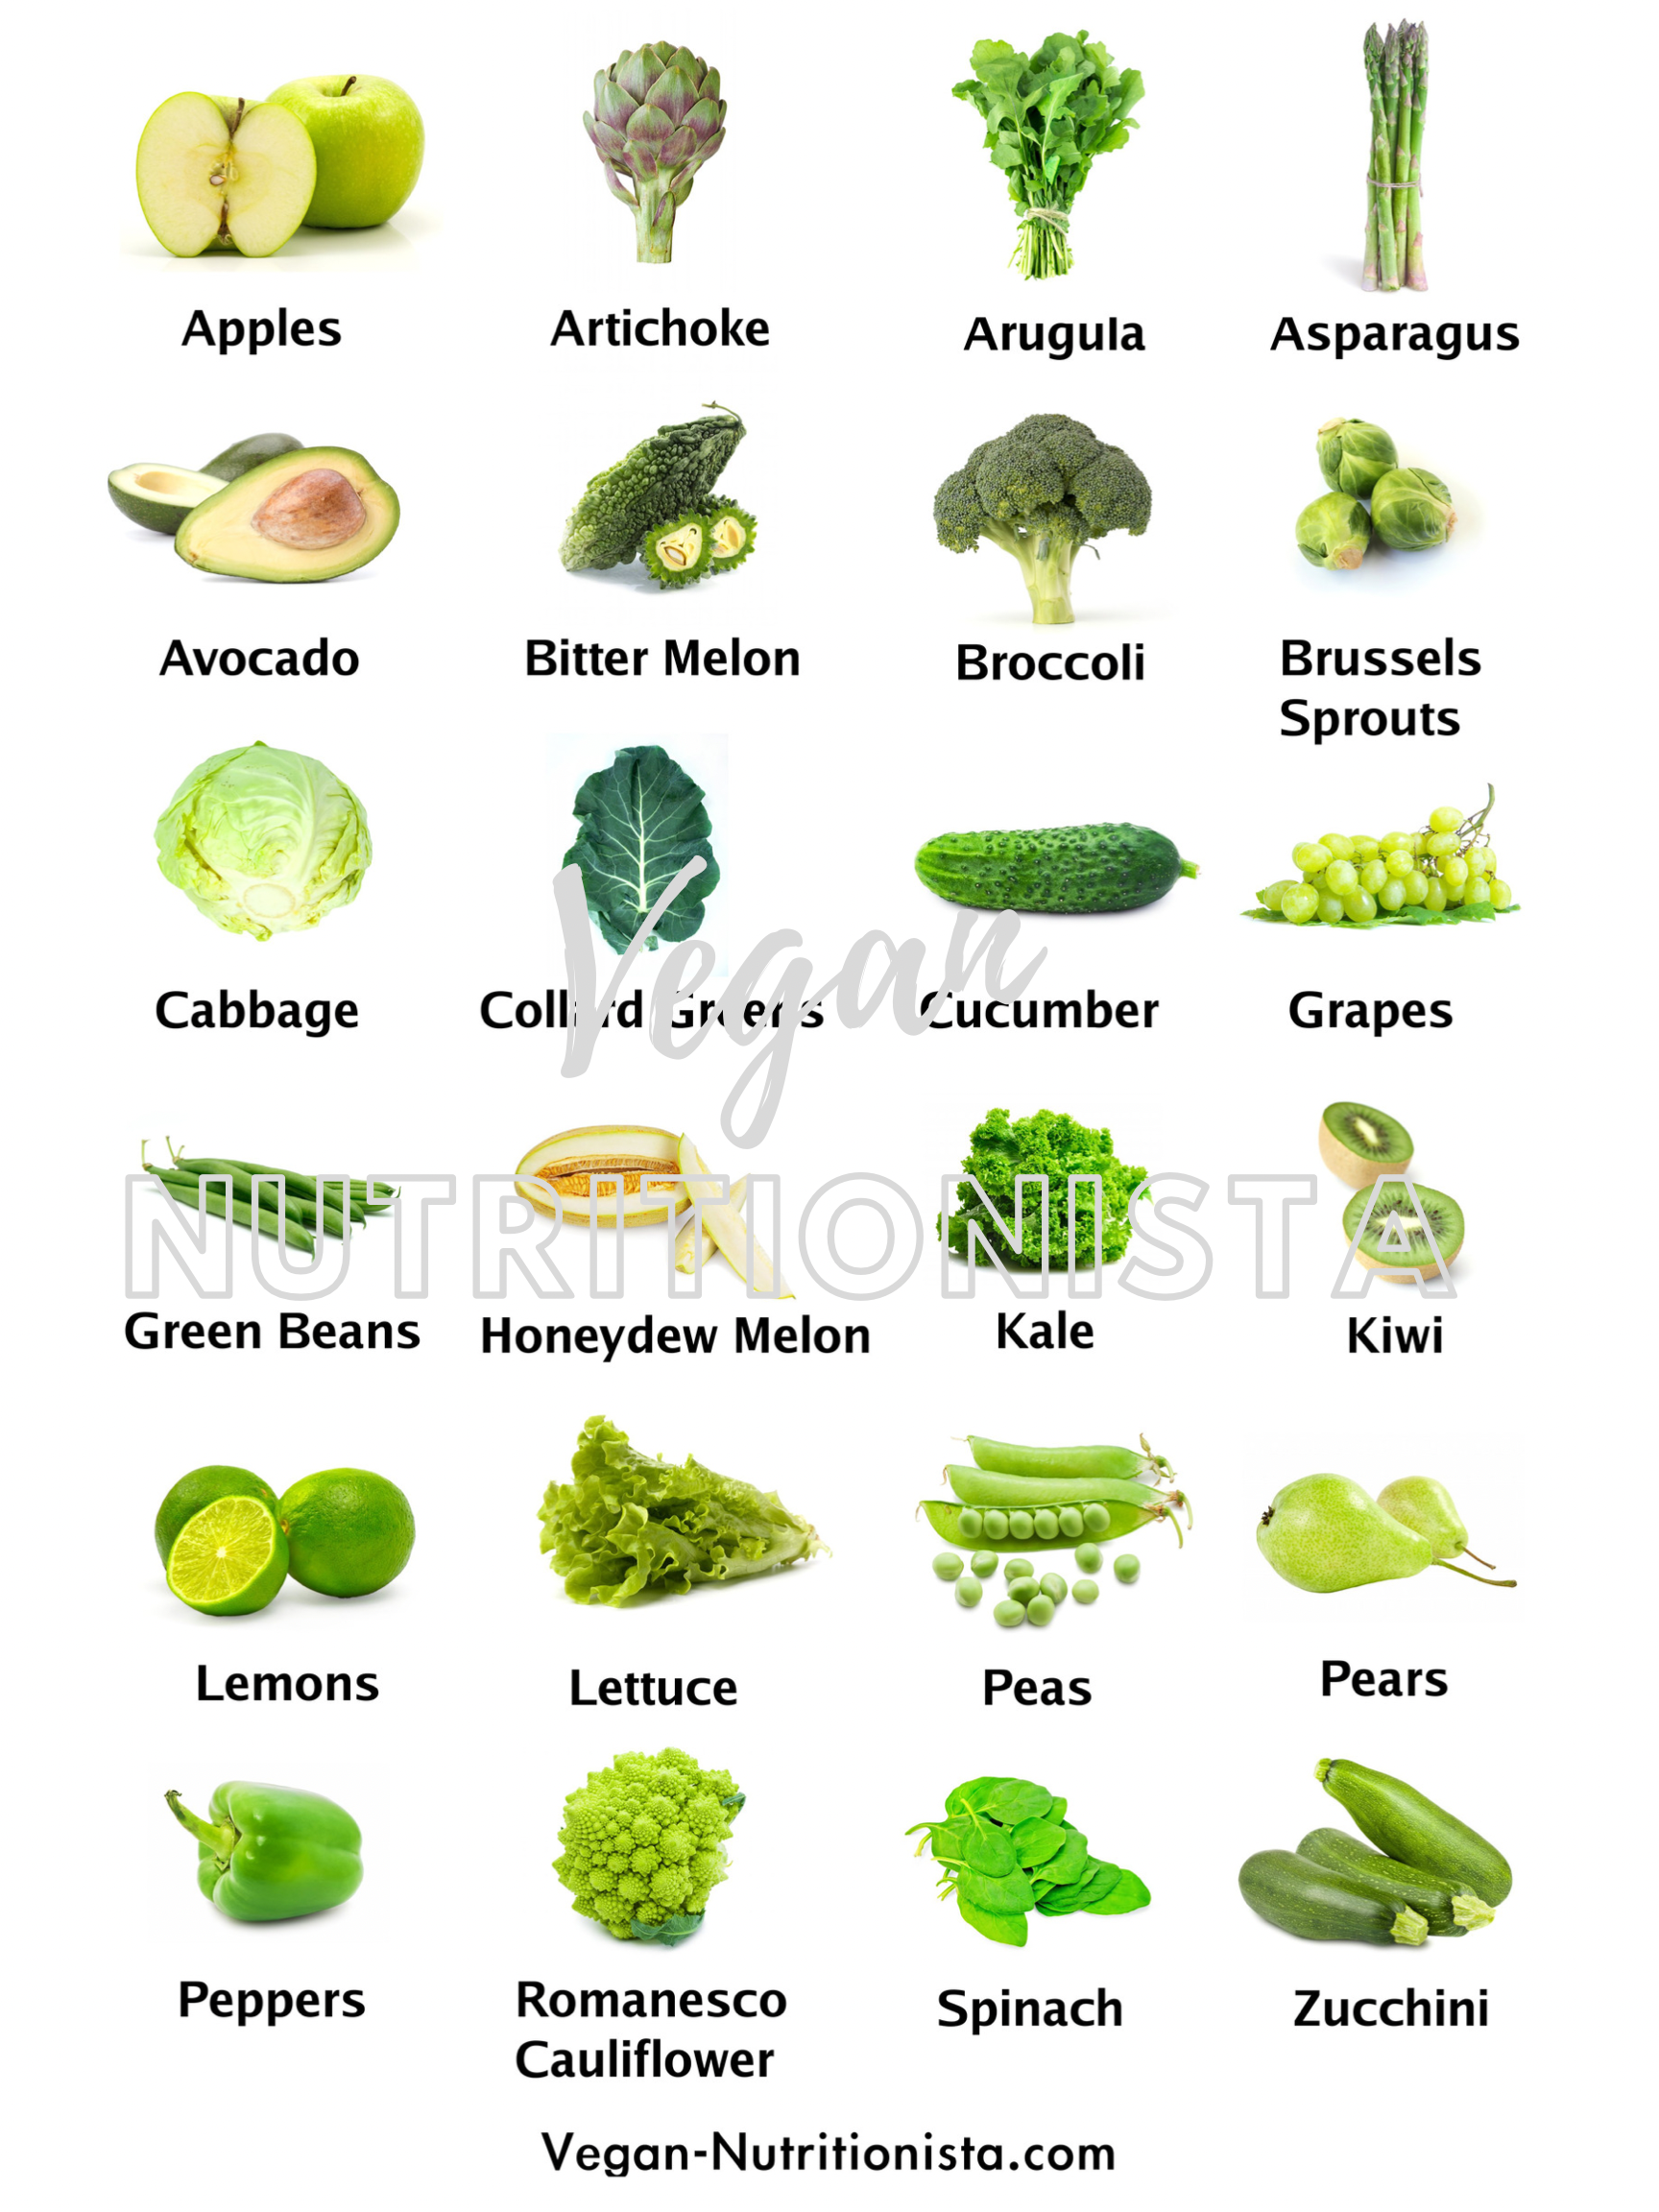 A picture showing the green fruits and vegetables